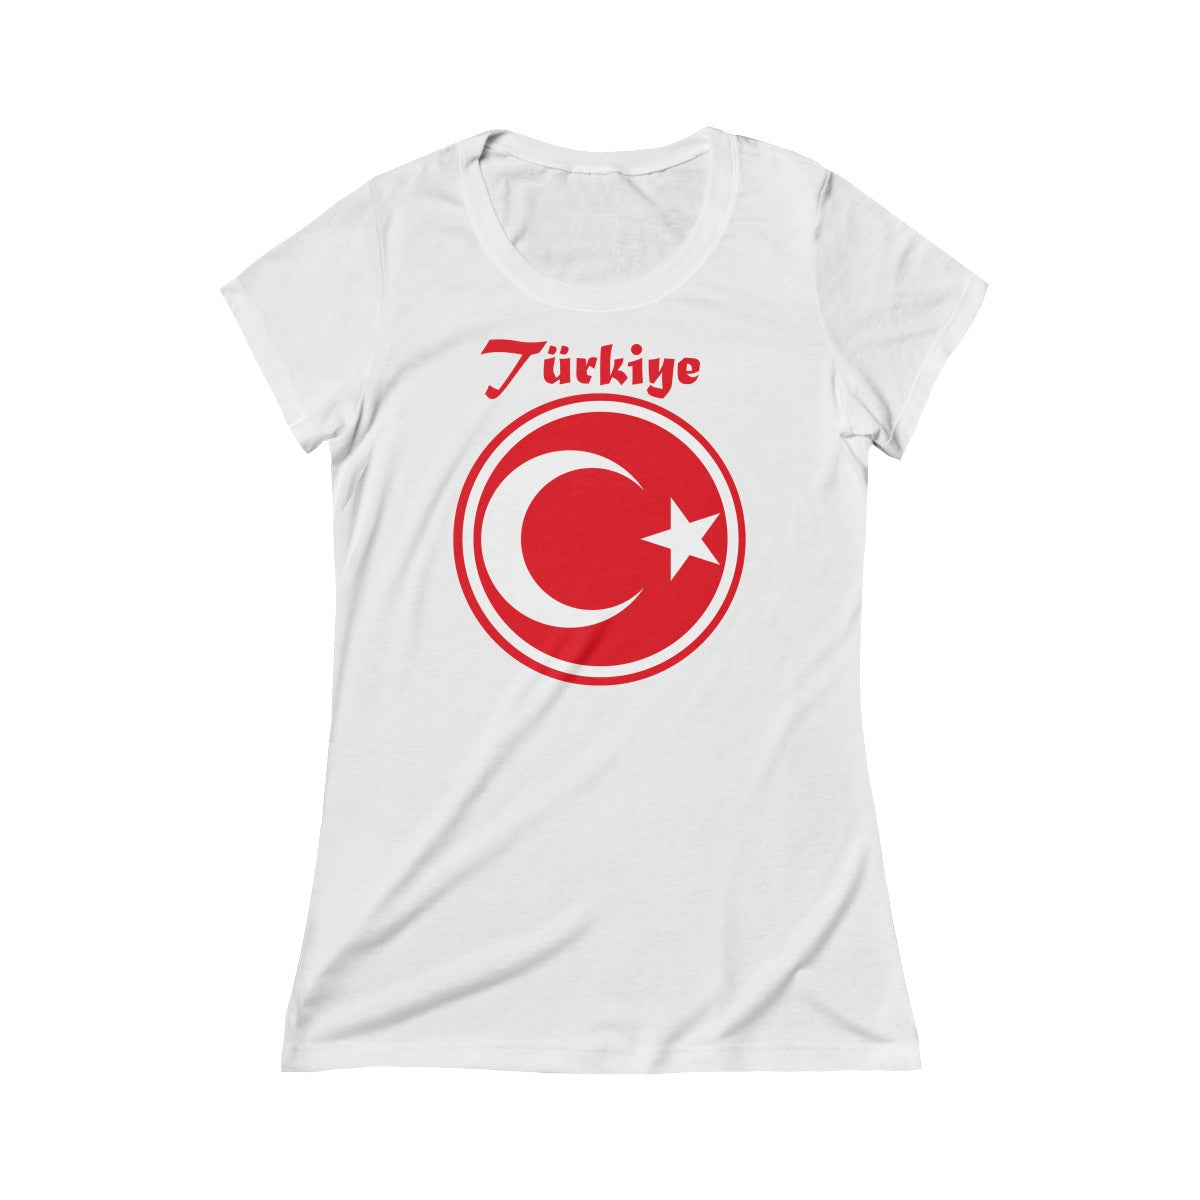 Rocco Turkey Triblend Short Sleeve Tee